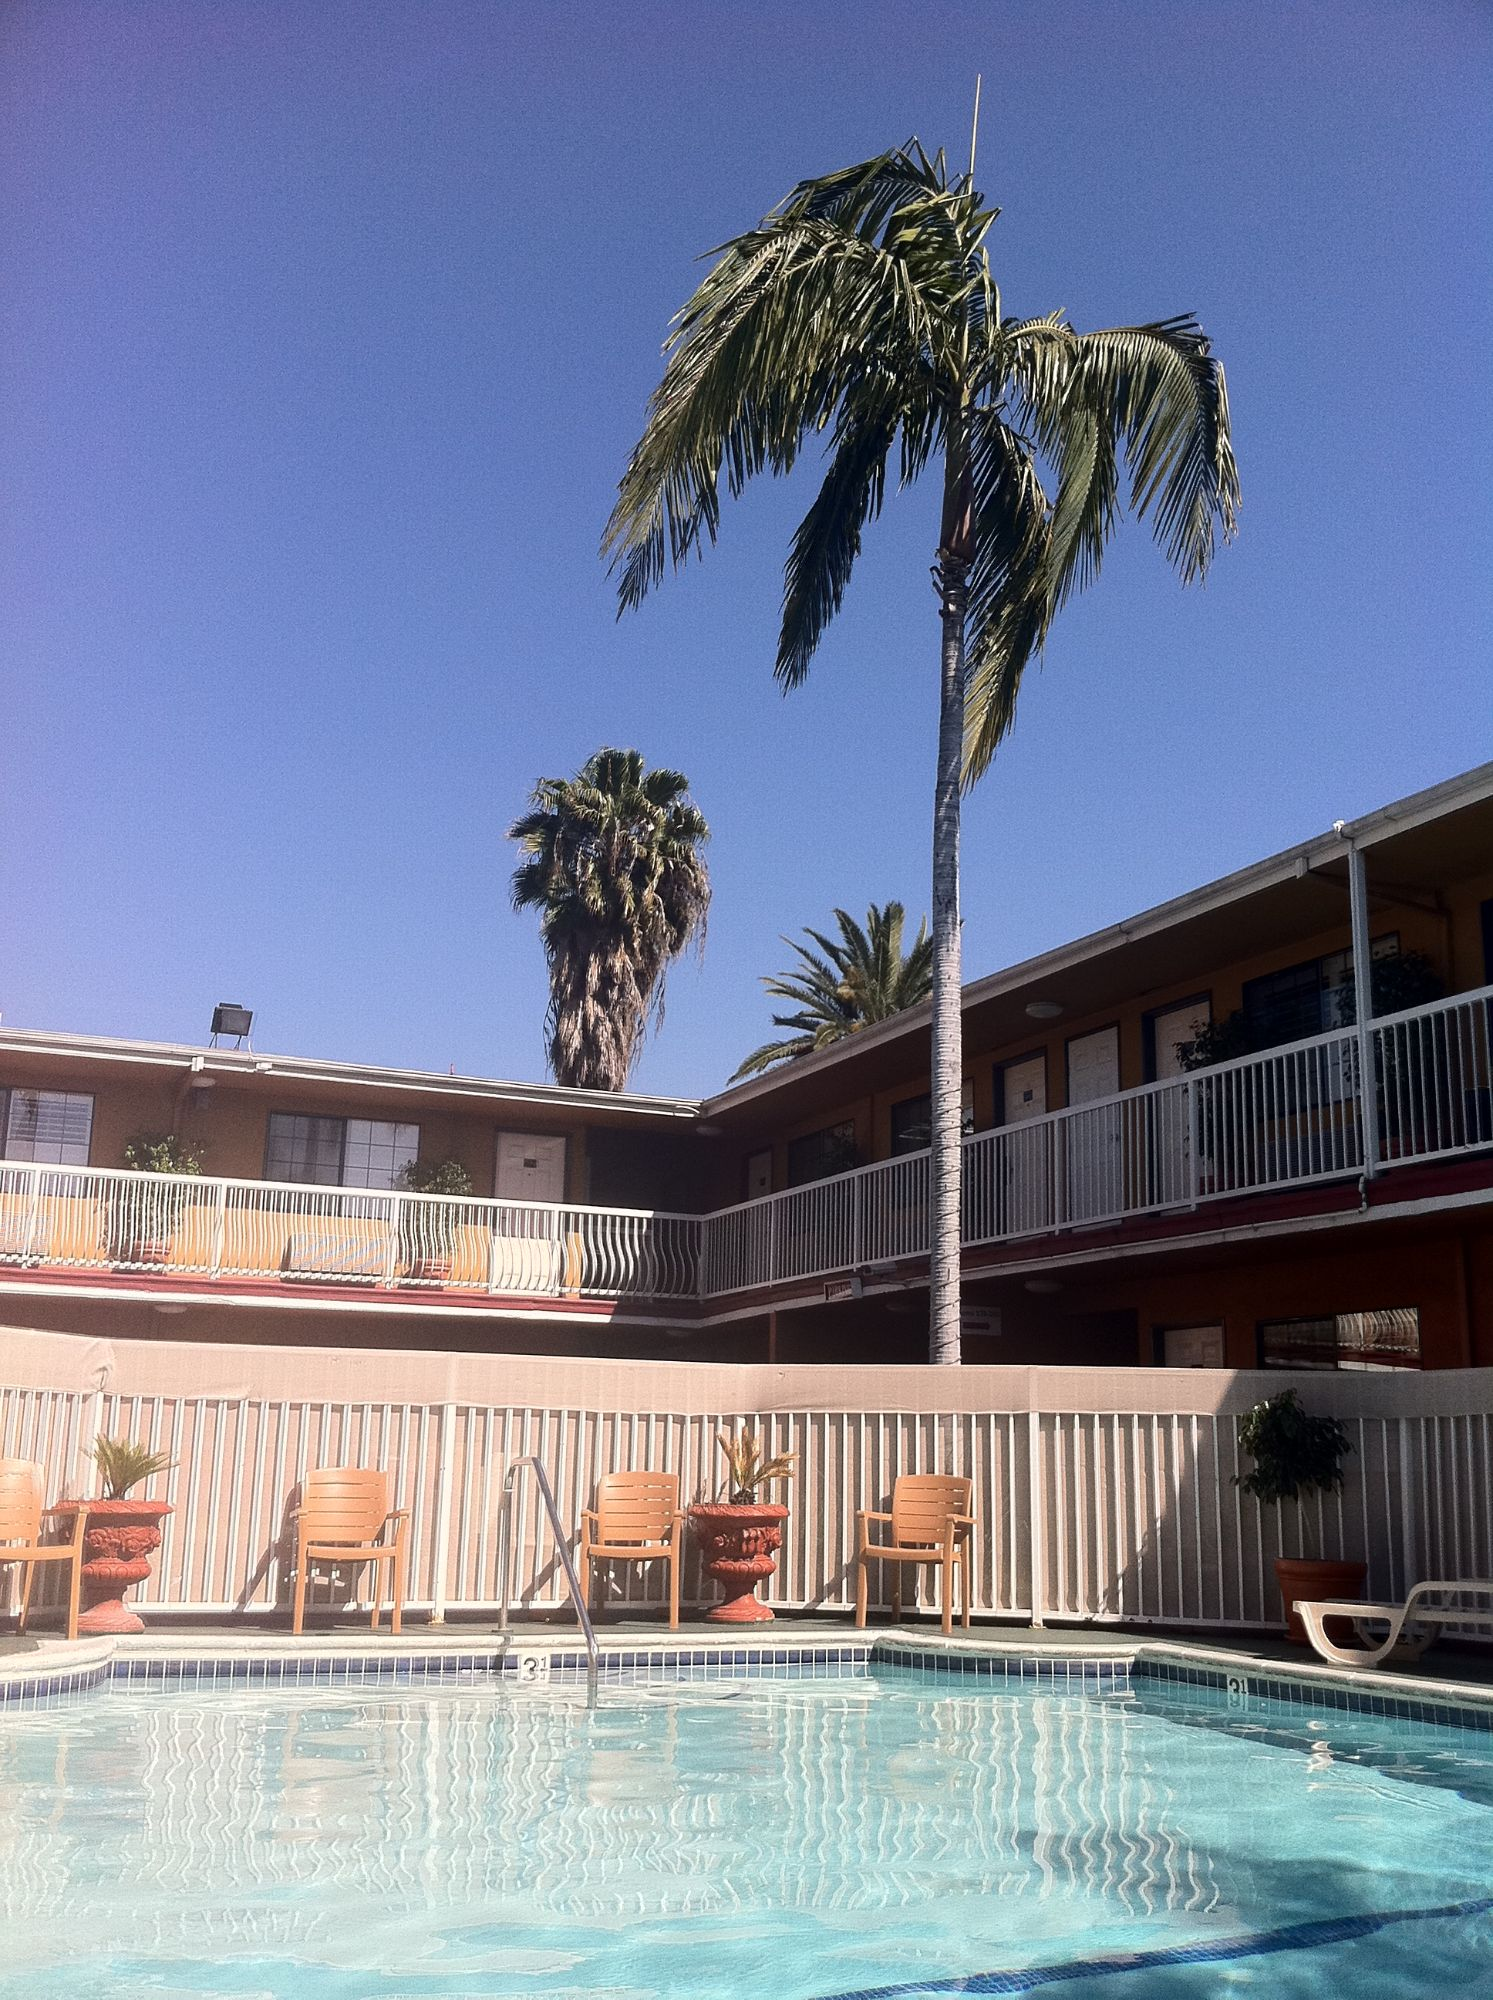 Free stock photo California Motel Swimming Pool Palm Trees Blue Sky